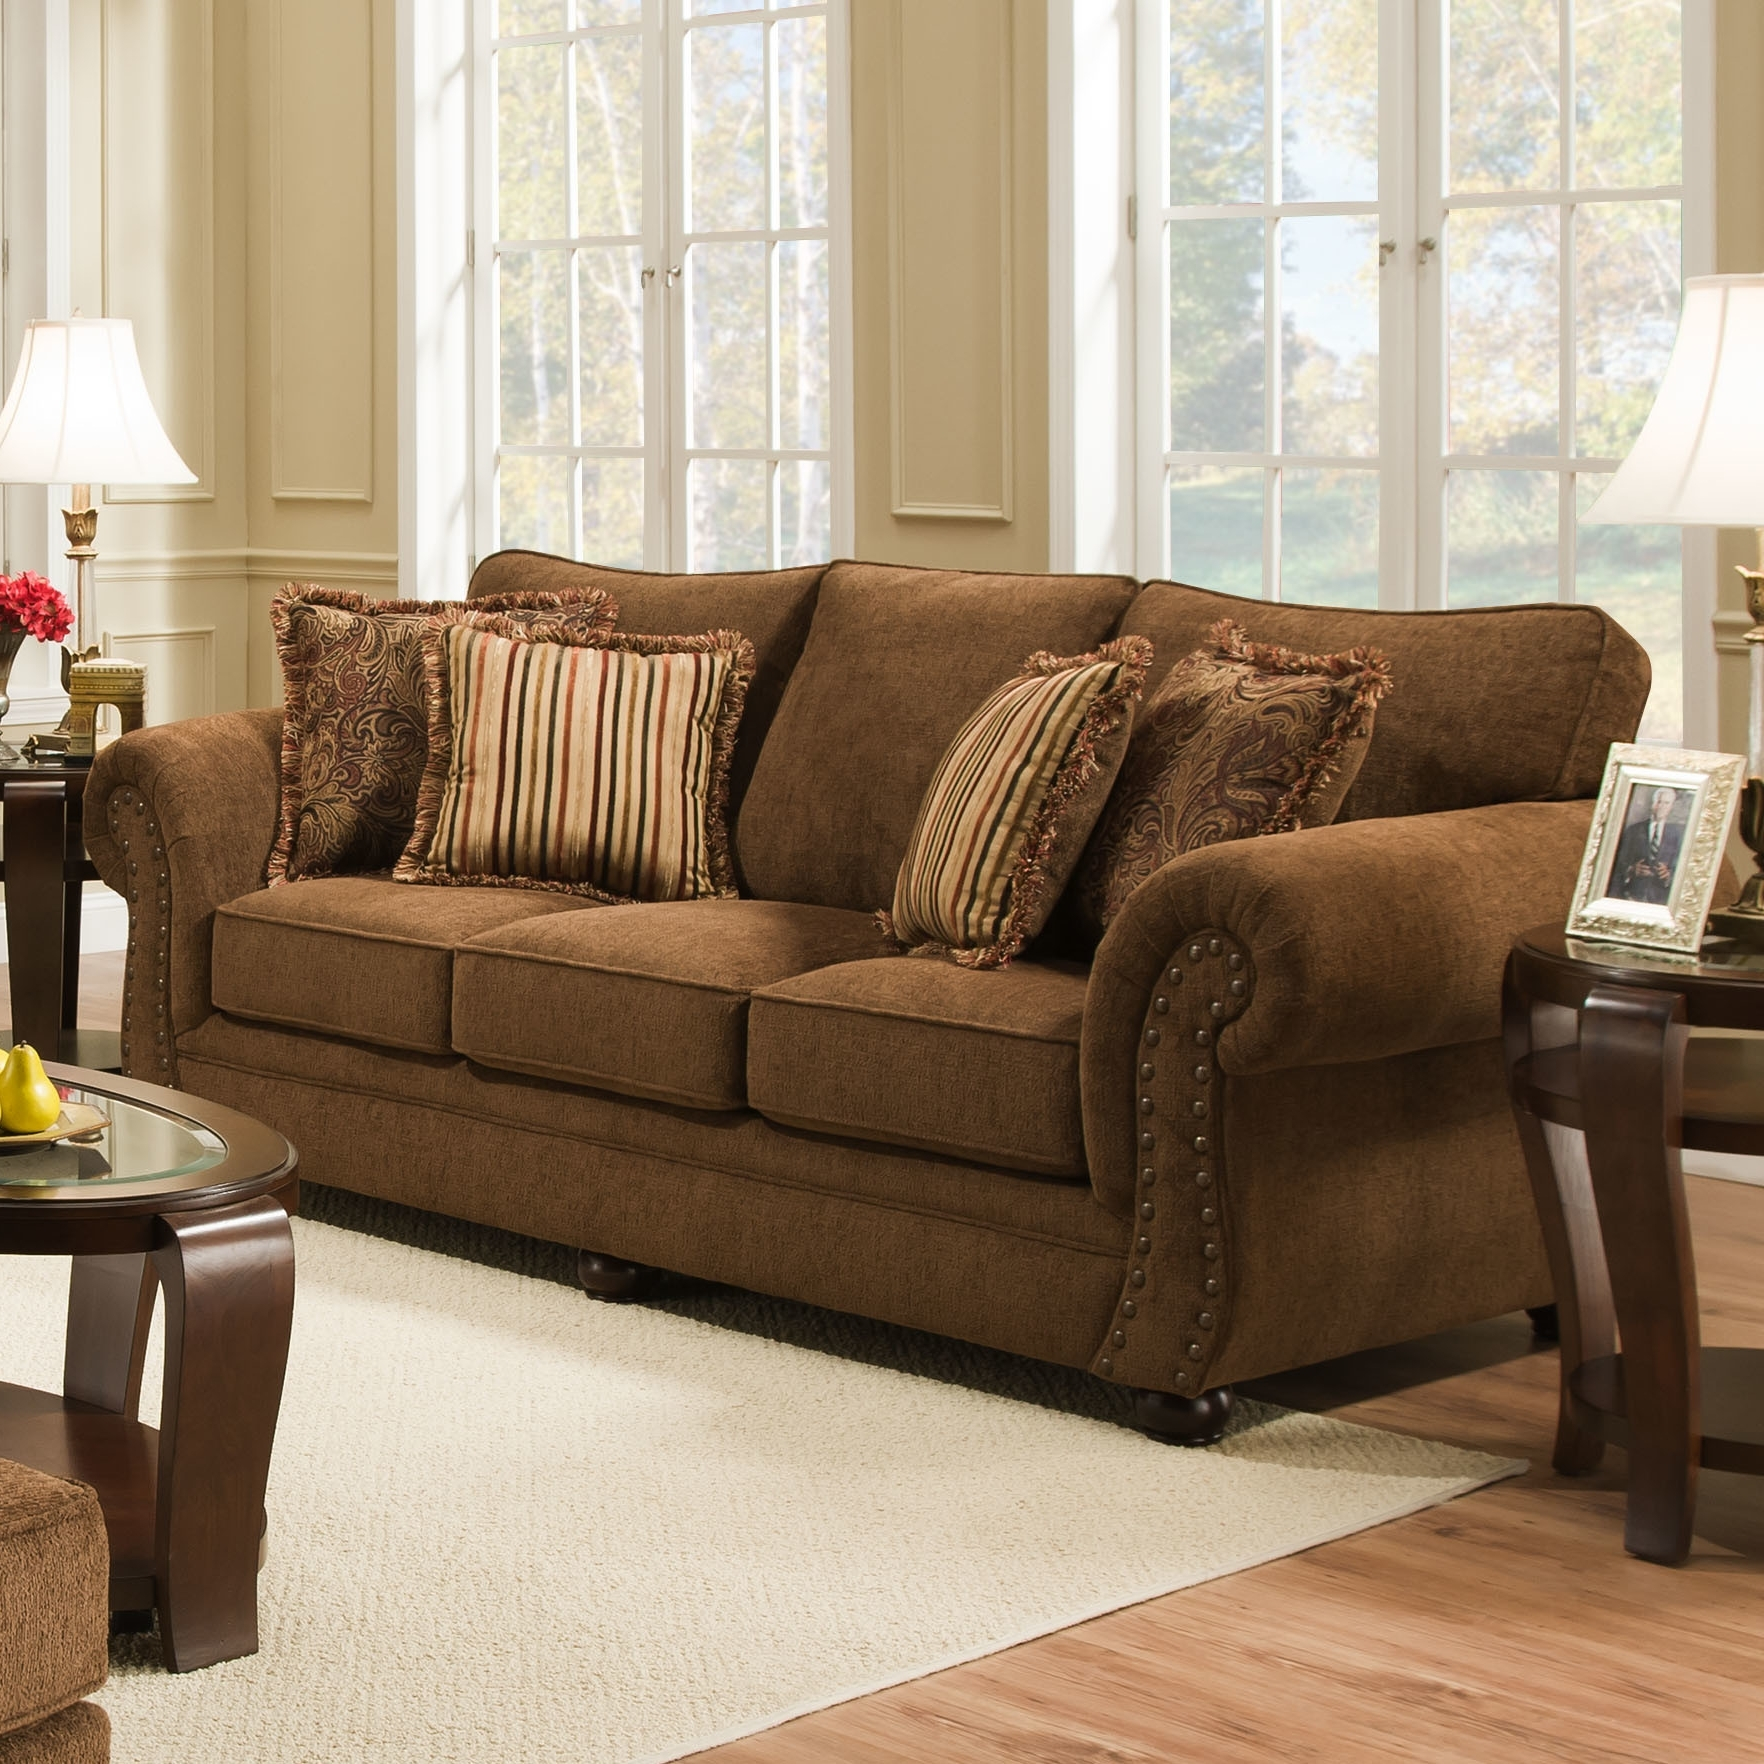 Current Big Lots Sofas Pertaining To Big Lots Sofa (View 6 of 15)